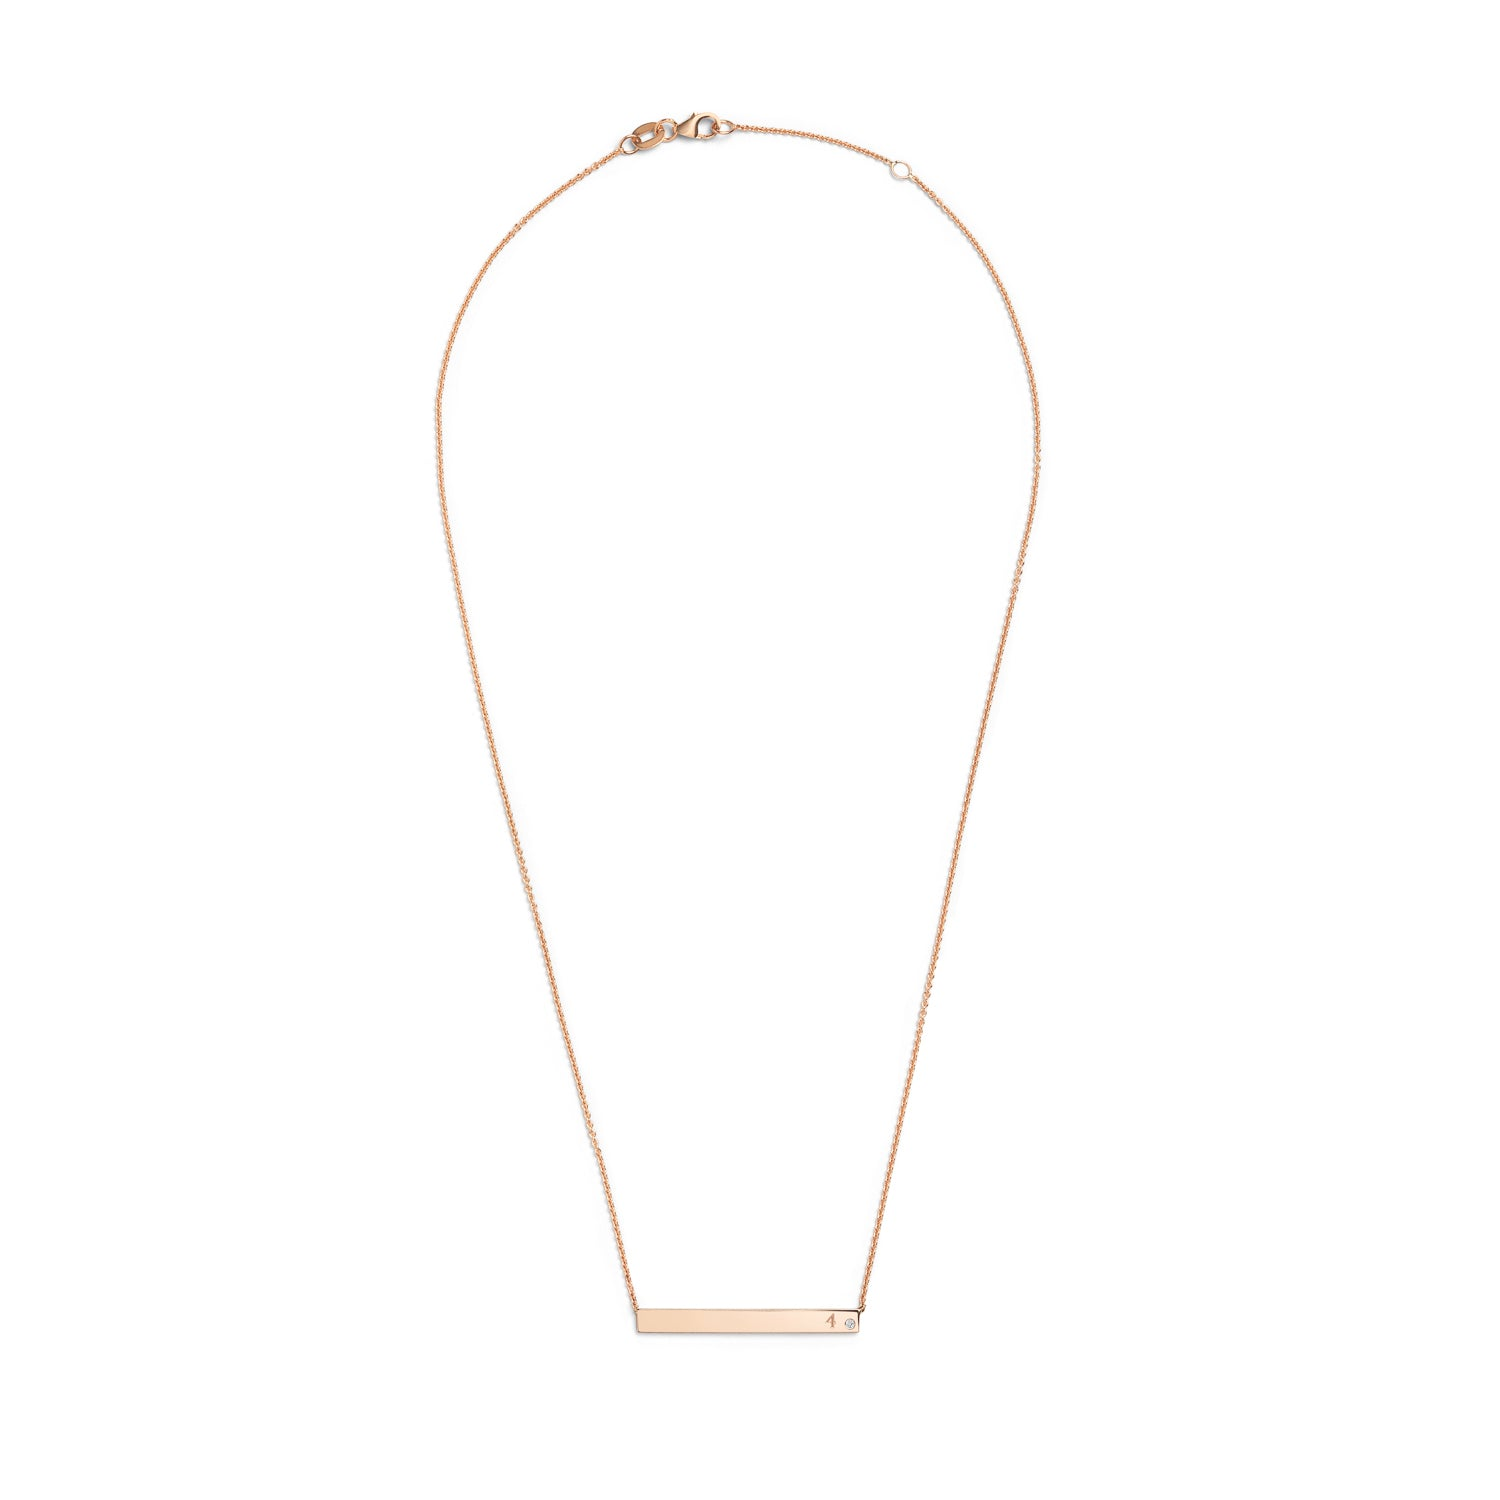 Selin Kent 14K Gain Horizontal Necklace with One White Diamond